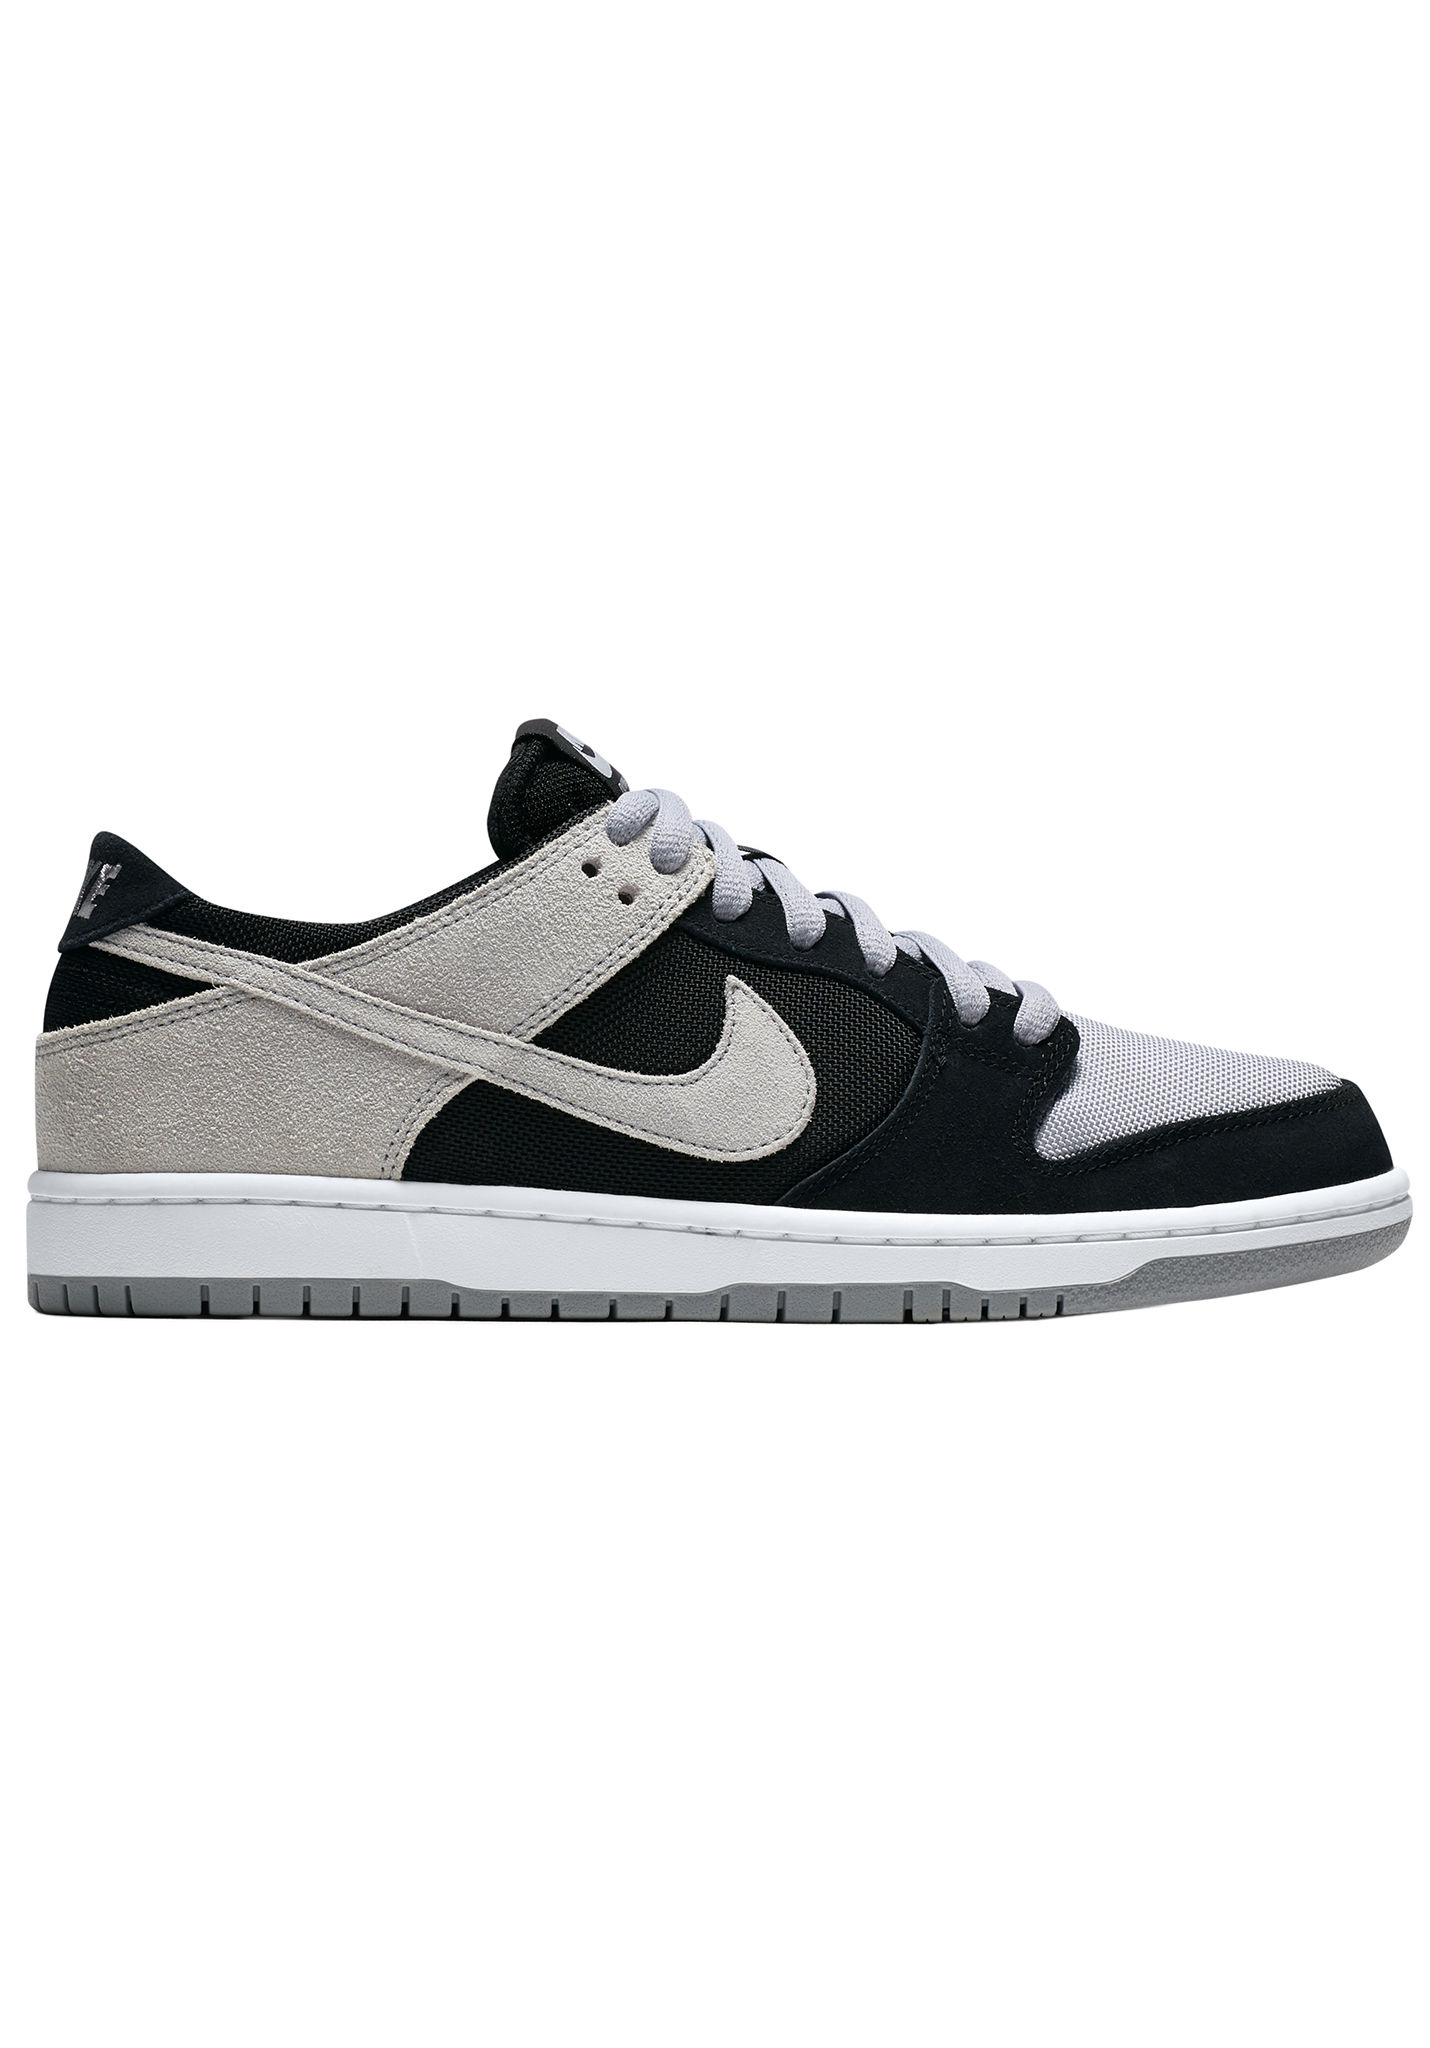 info for fa98a 9f90b NIKE SB Zoom Dunk Low Pro - Sneakers voor Heren - Zwart - Pl